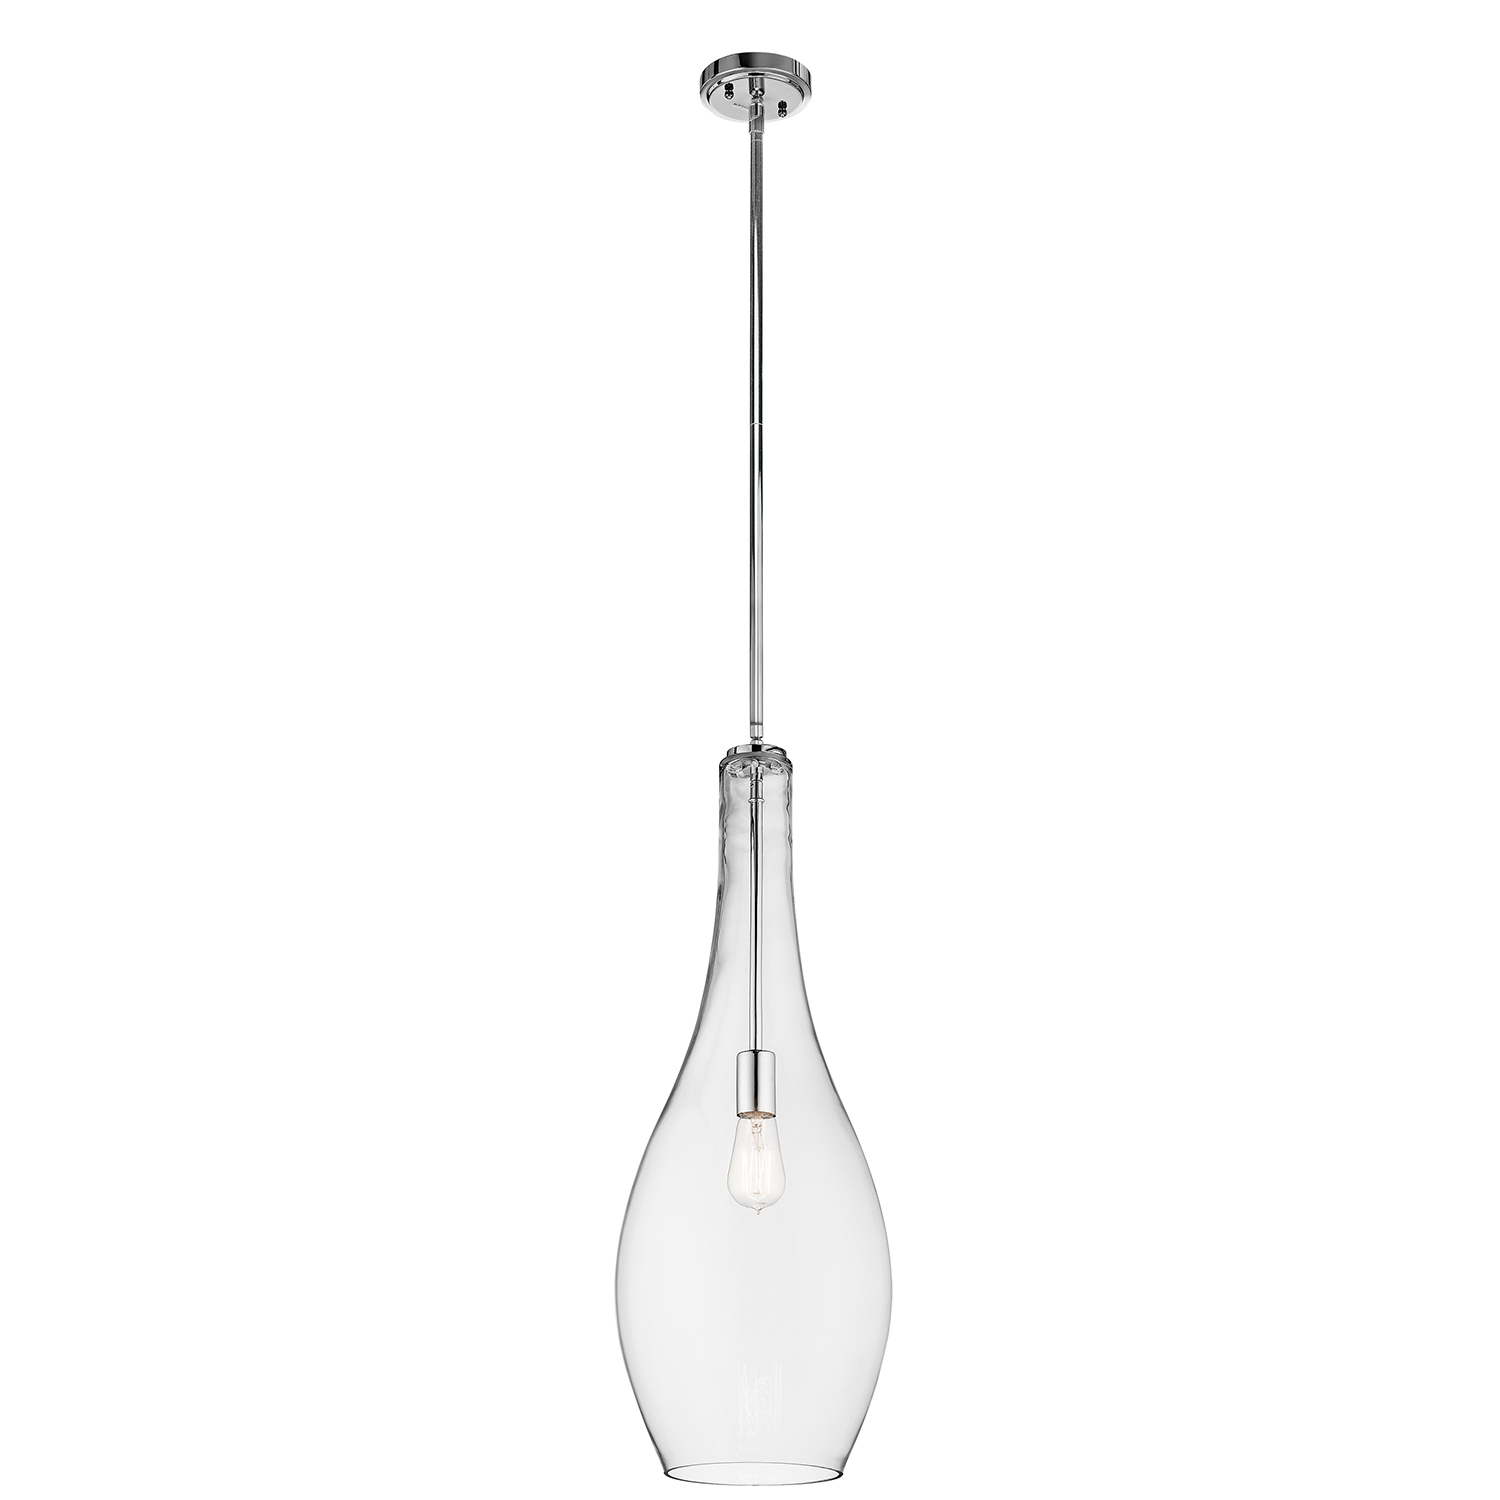 Primary image for Kichler 42475CHCLR Everly Pendants 11in Chromes Tones STEEL 1-light